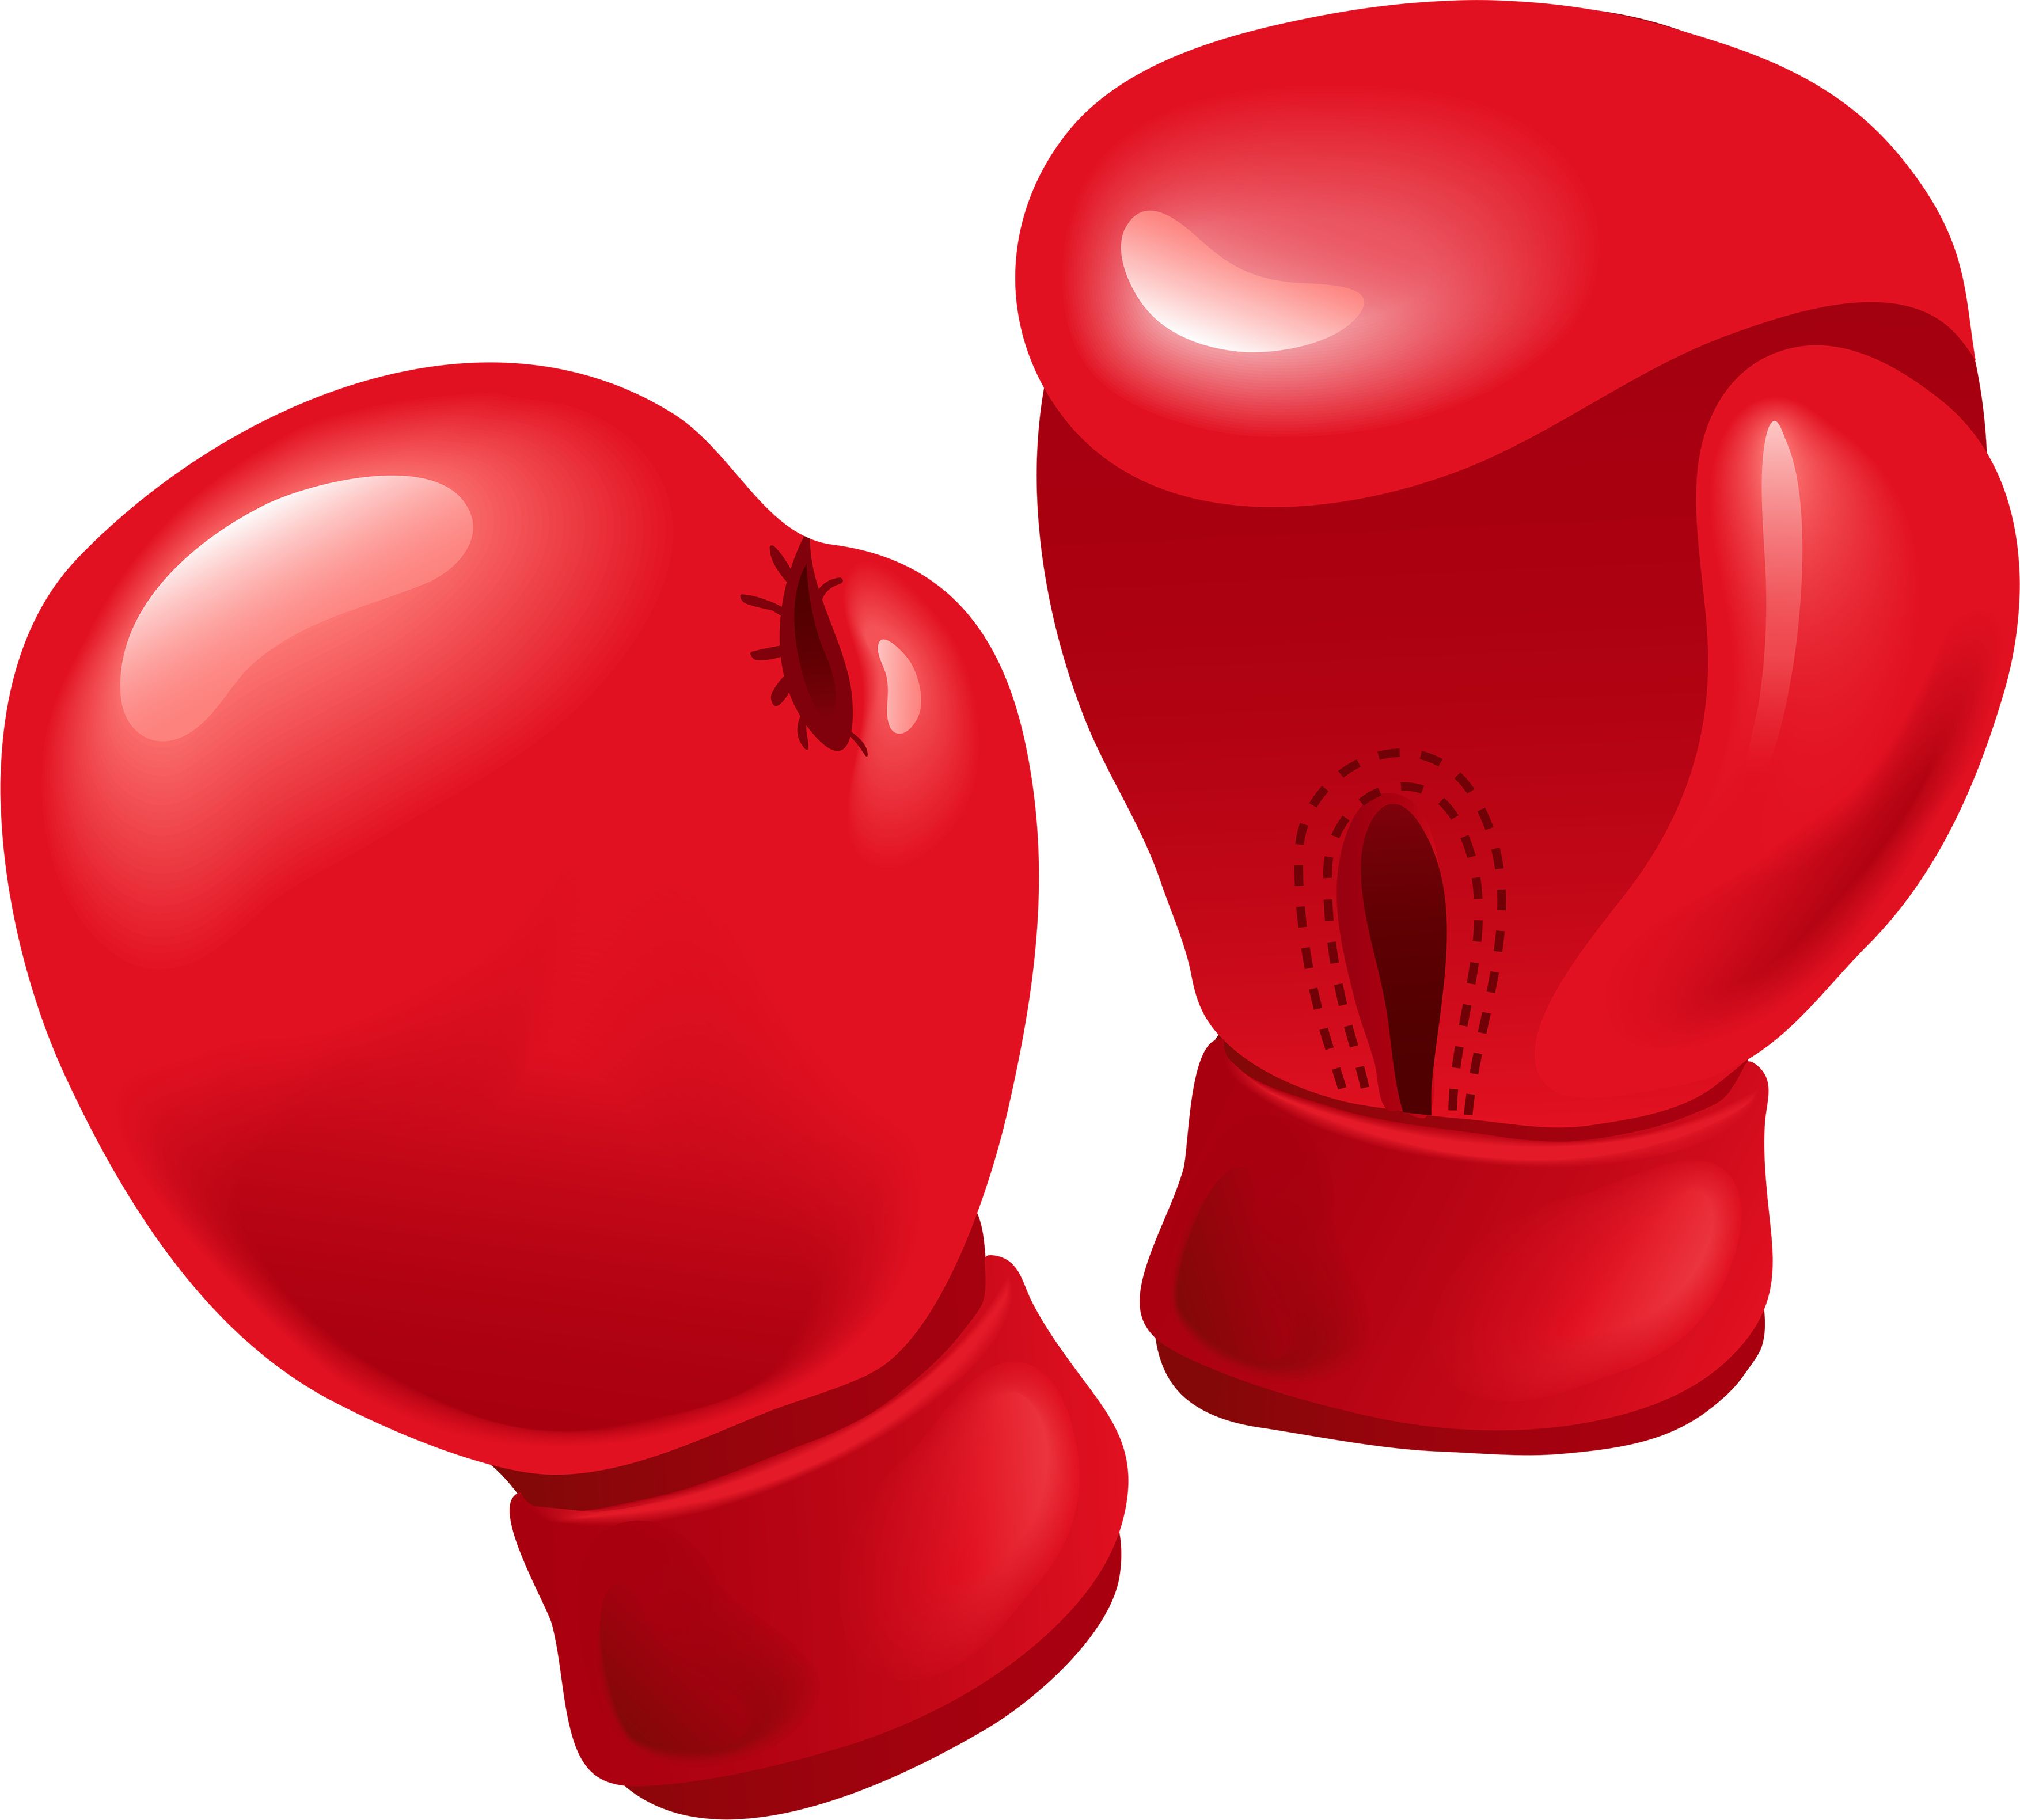 Red Boxing Gloves Png image #32985